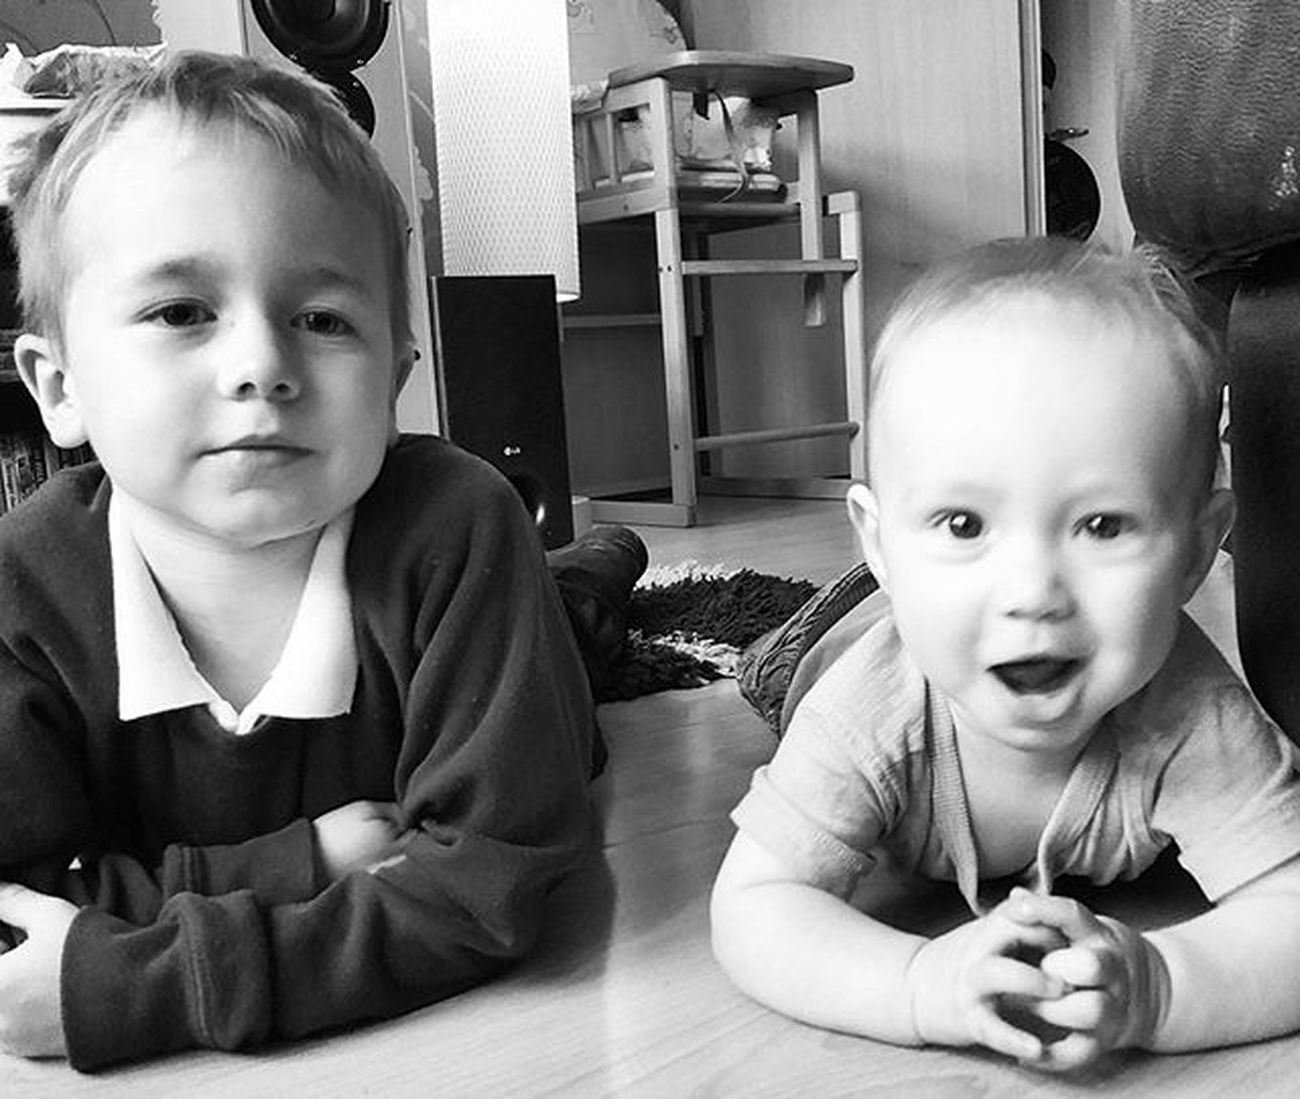 Sons Brothers Blackandwhite Brotherlylove Morning Happyboys Readyforschoolrun Photo LoveThem